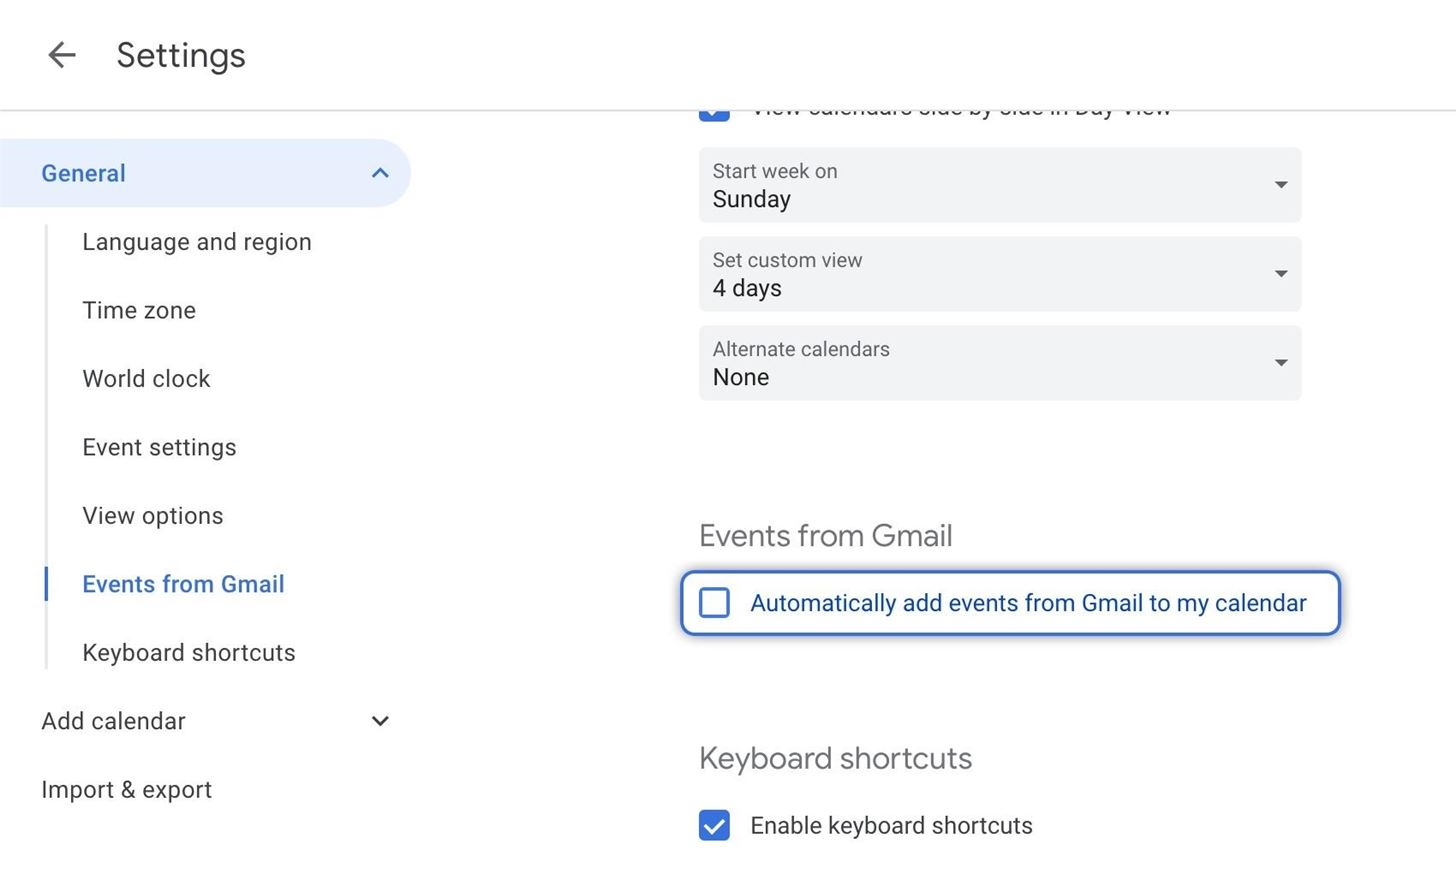 Spam Events Showing Up in Google Calendar? Here's the Fix